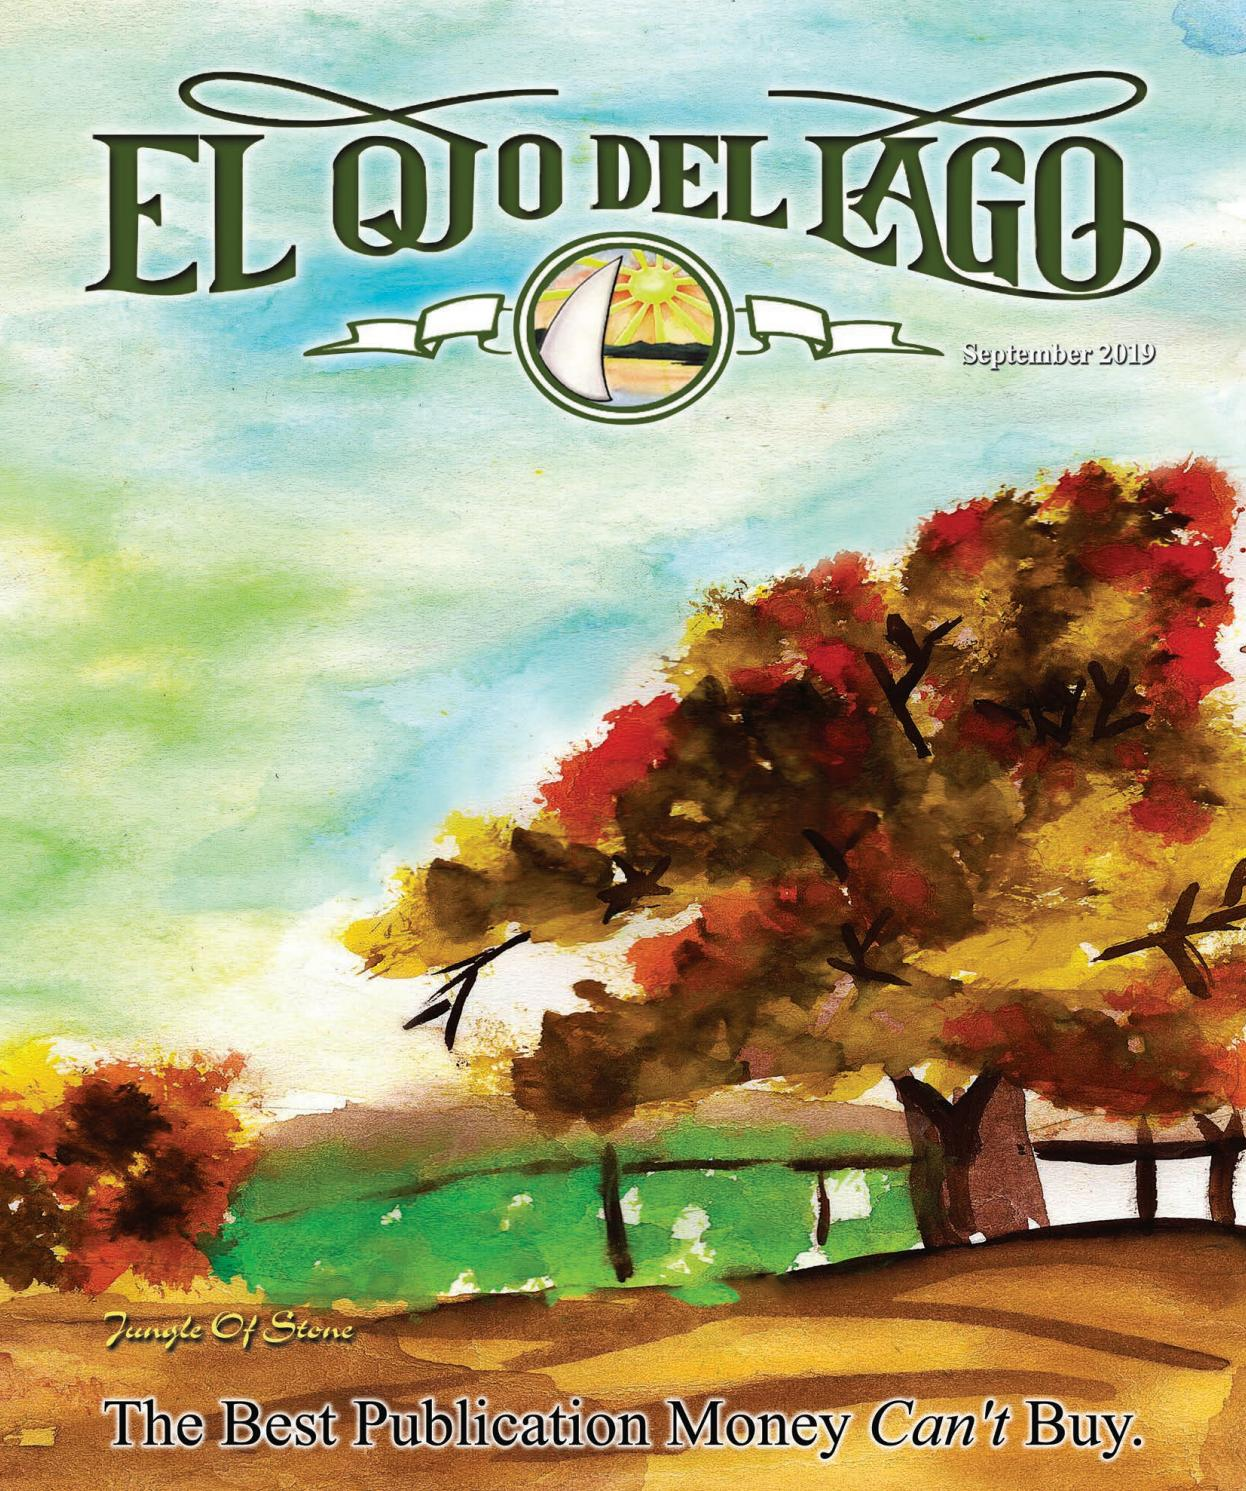 El Ojo del Lago - September 2019 by El Ojo del Lago - issuu